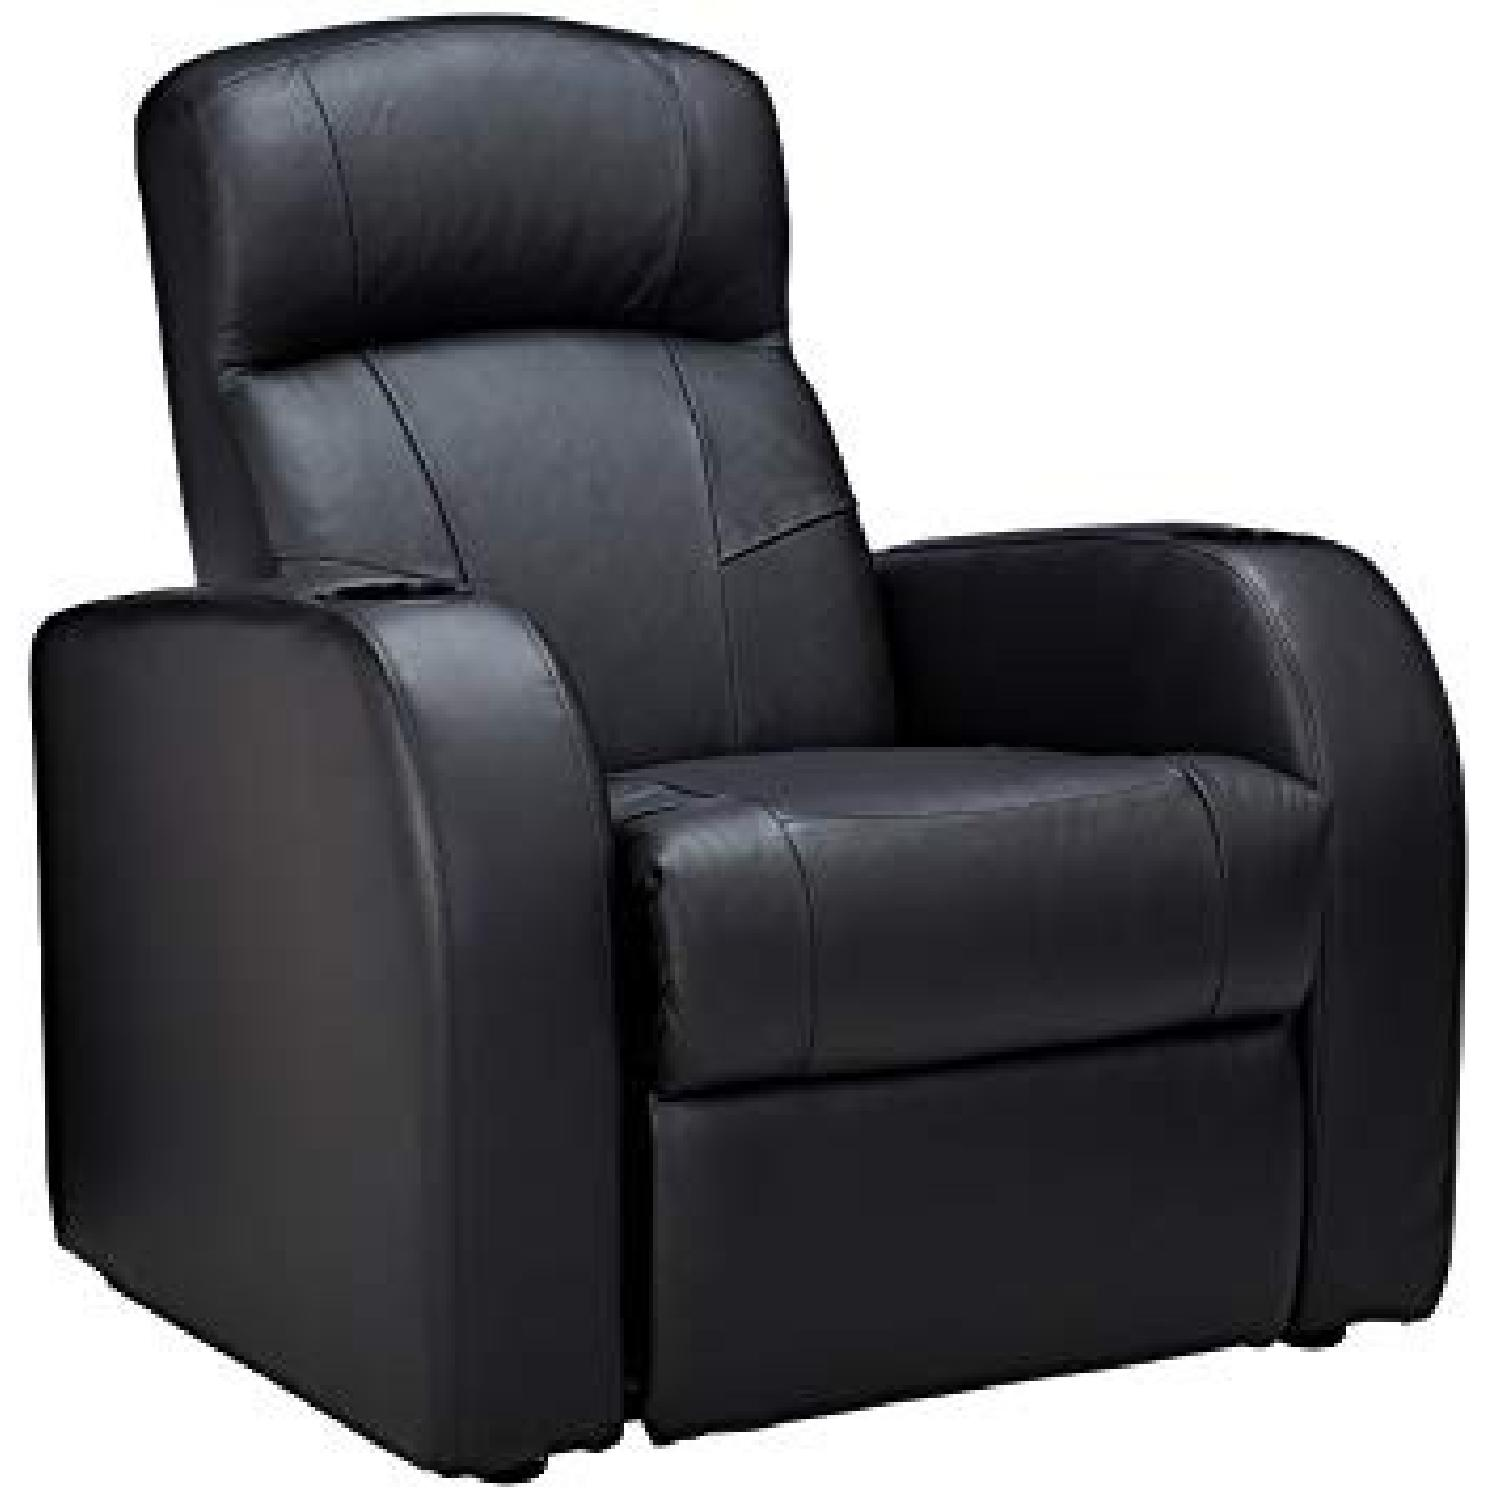 Recliner Chair in Black Leather Match w/ Cup-Holders-0